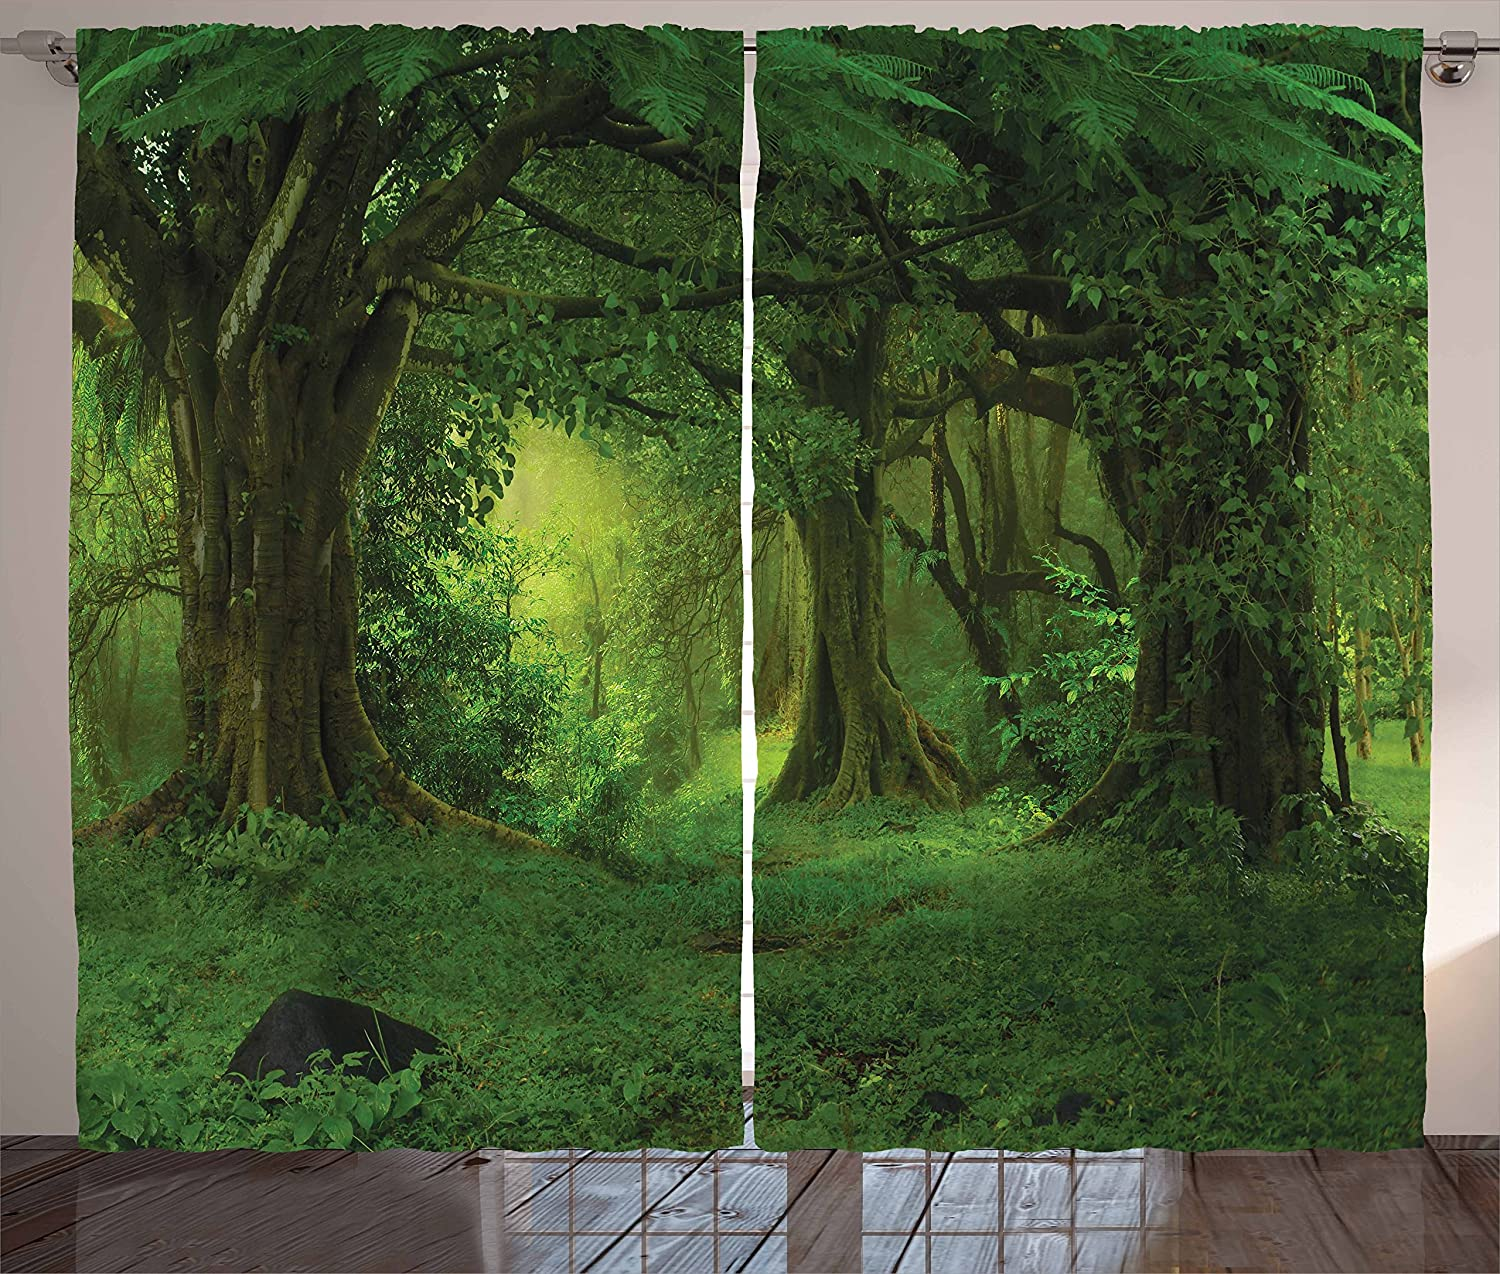 Ambesonne Nature Curtains, Deep Tropical Jungle Trees Foliage in The Woodland Himalayas Meditation Landscape, Living Room Bedroom Window Drapes 2 Panel Set, 108